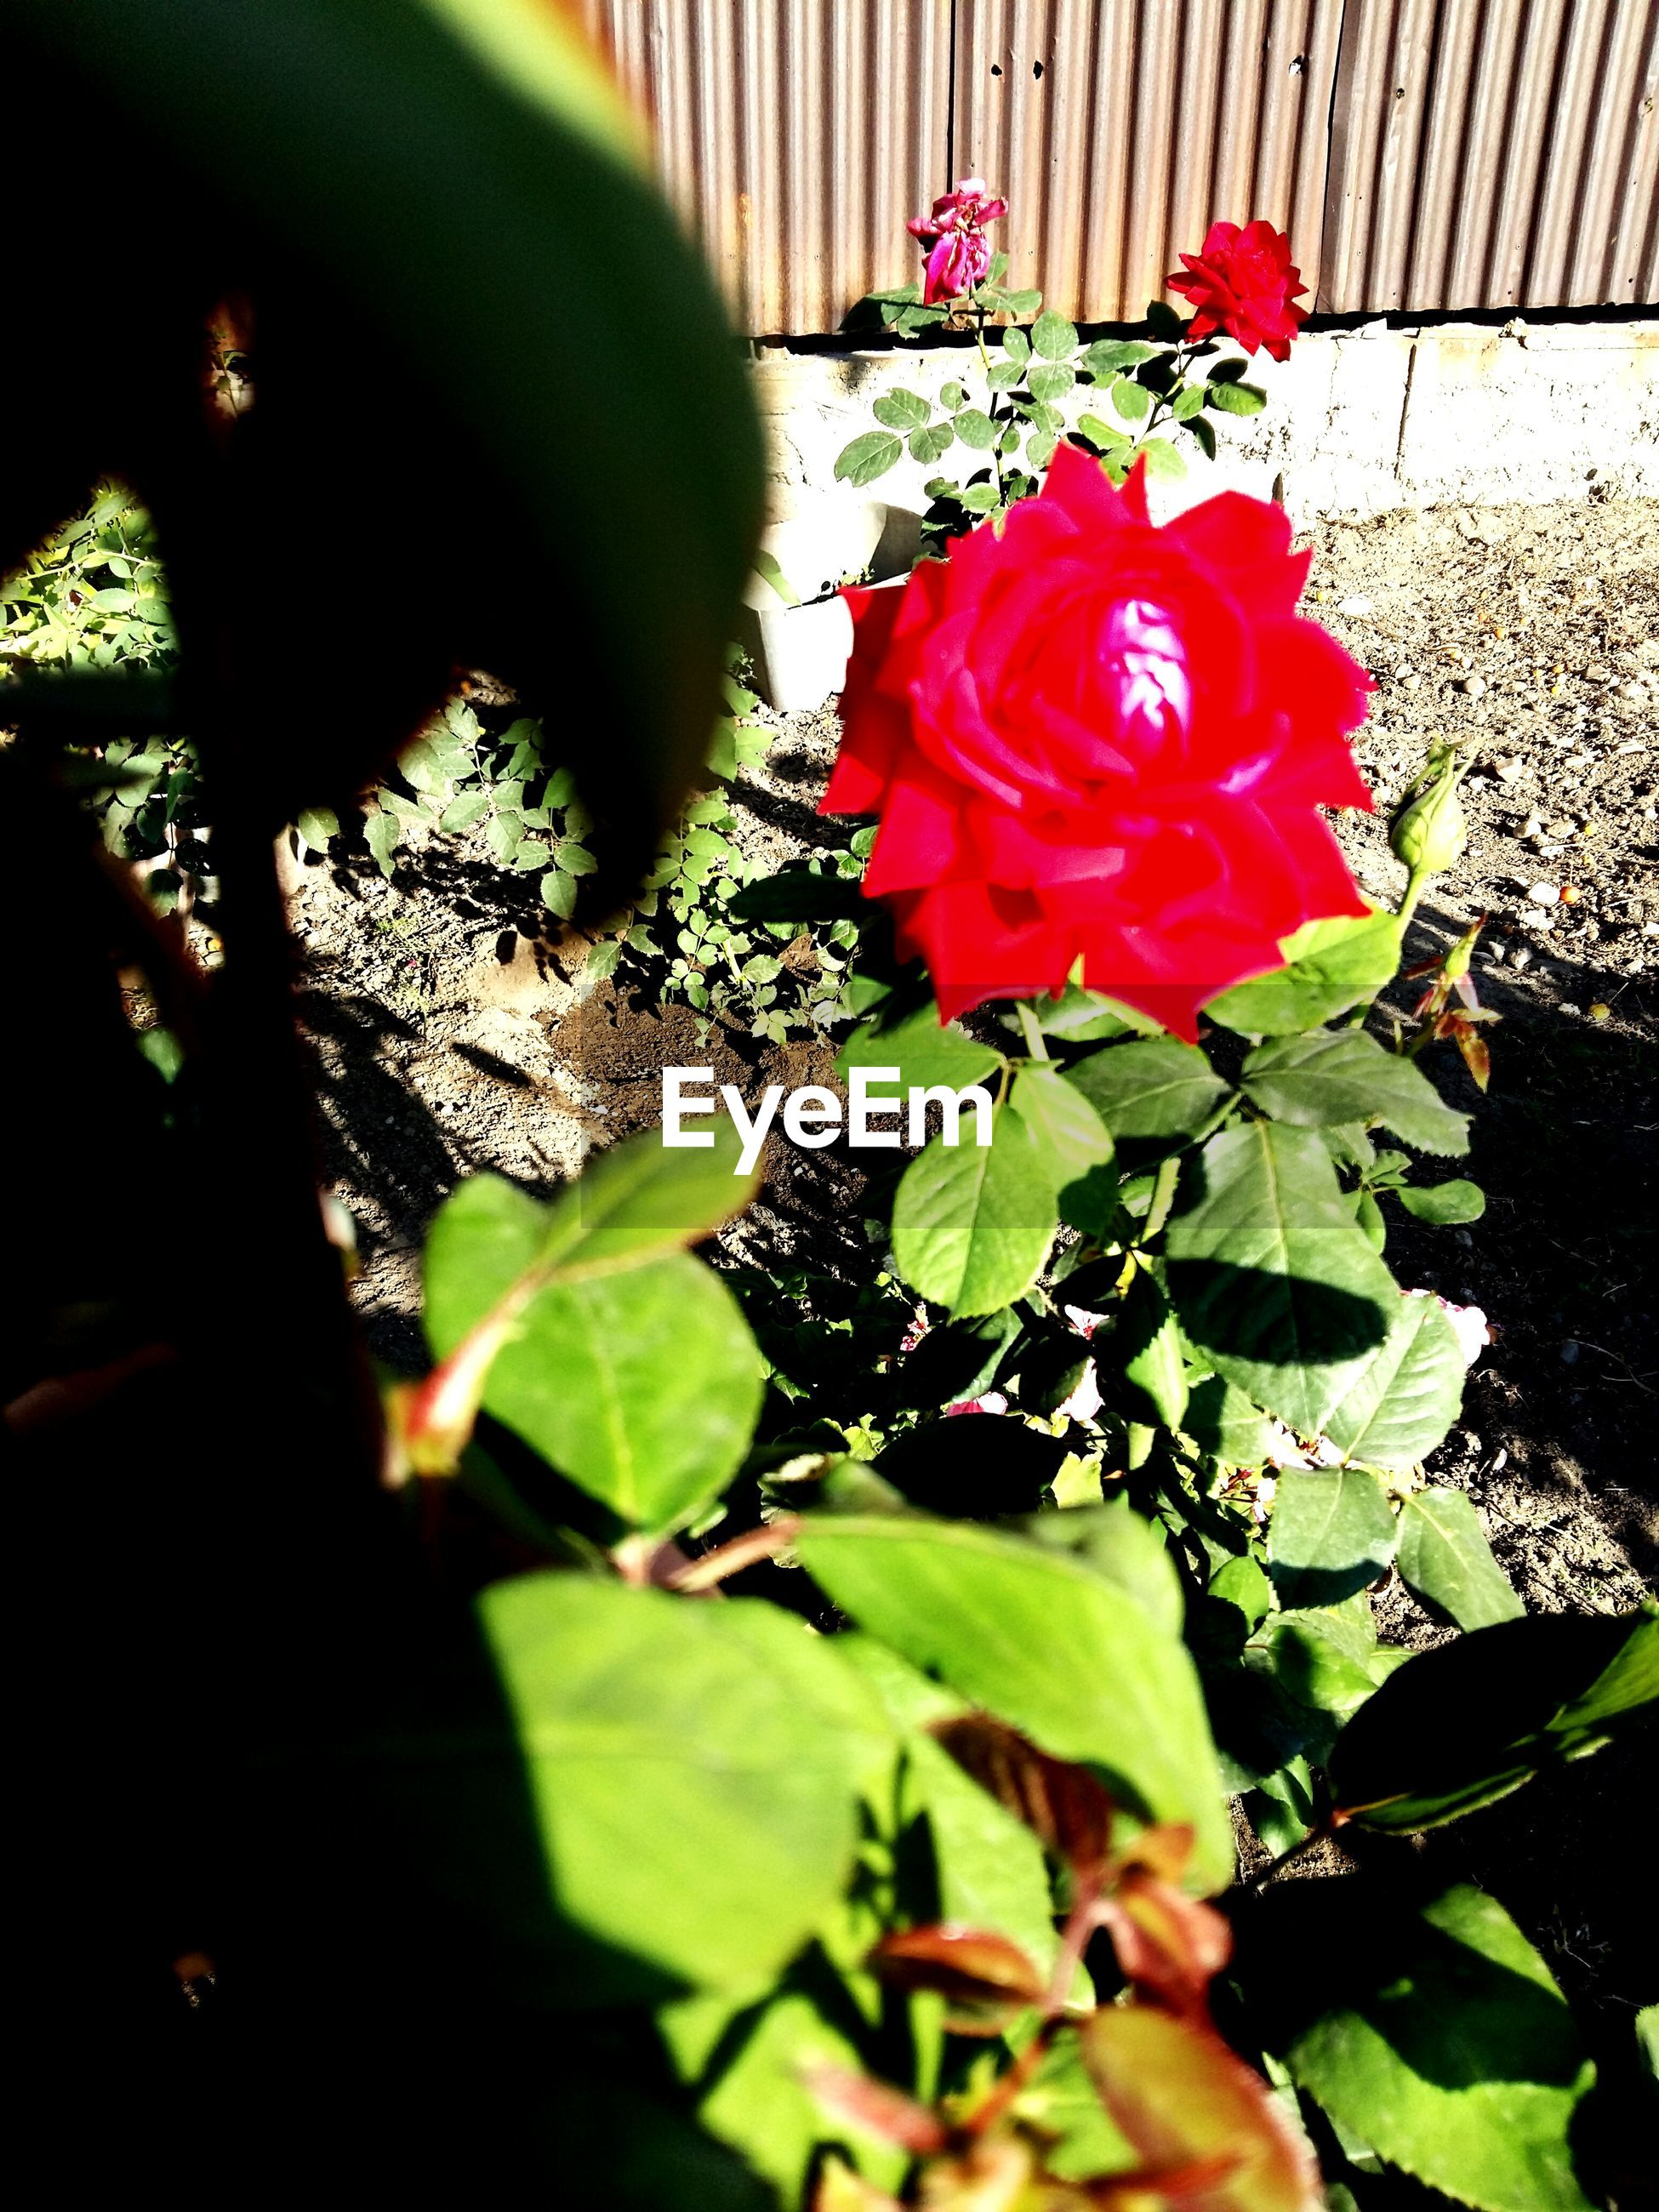 flower, petal, freshness, leaf, fragility, plant, growth, flower head, red, blooming, beauty in nature, nature, close-up, potted plant, rose - flower, in bloom, green color, sunlight, day, high angle view